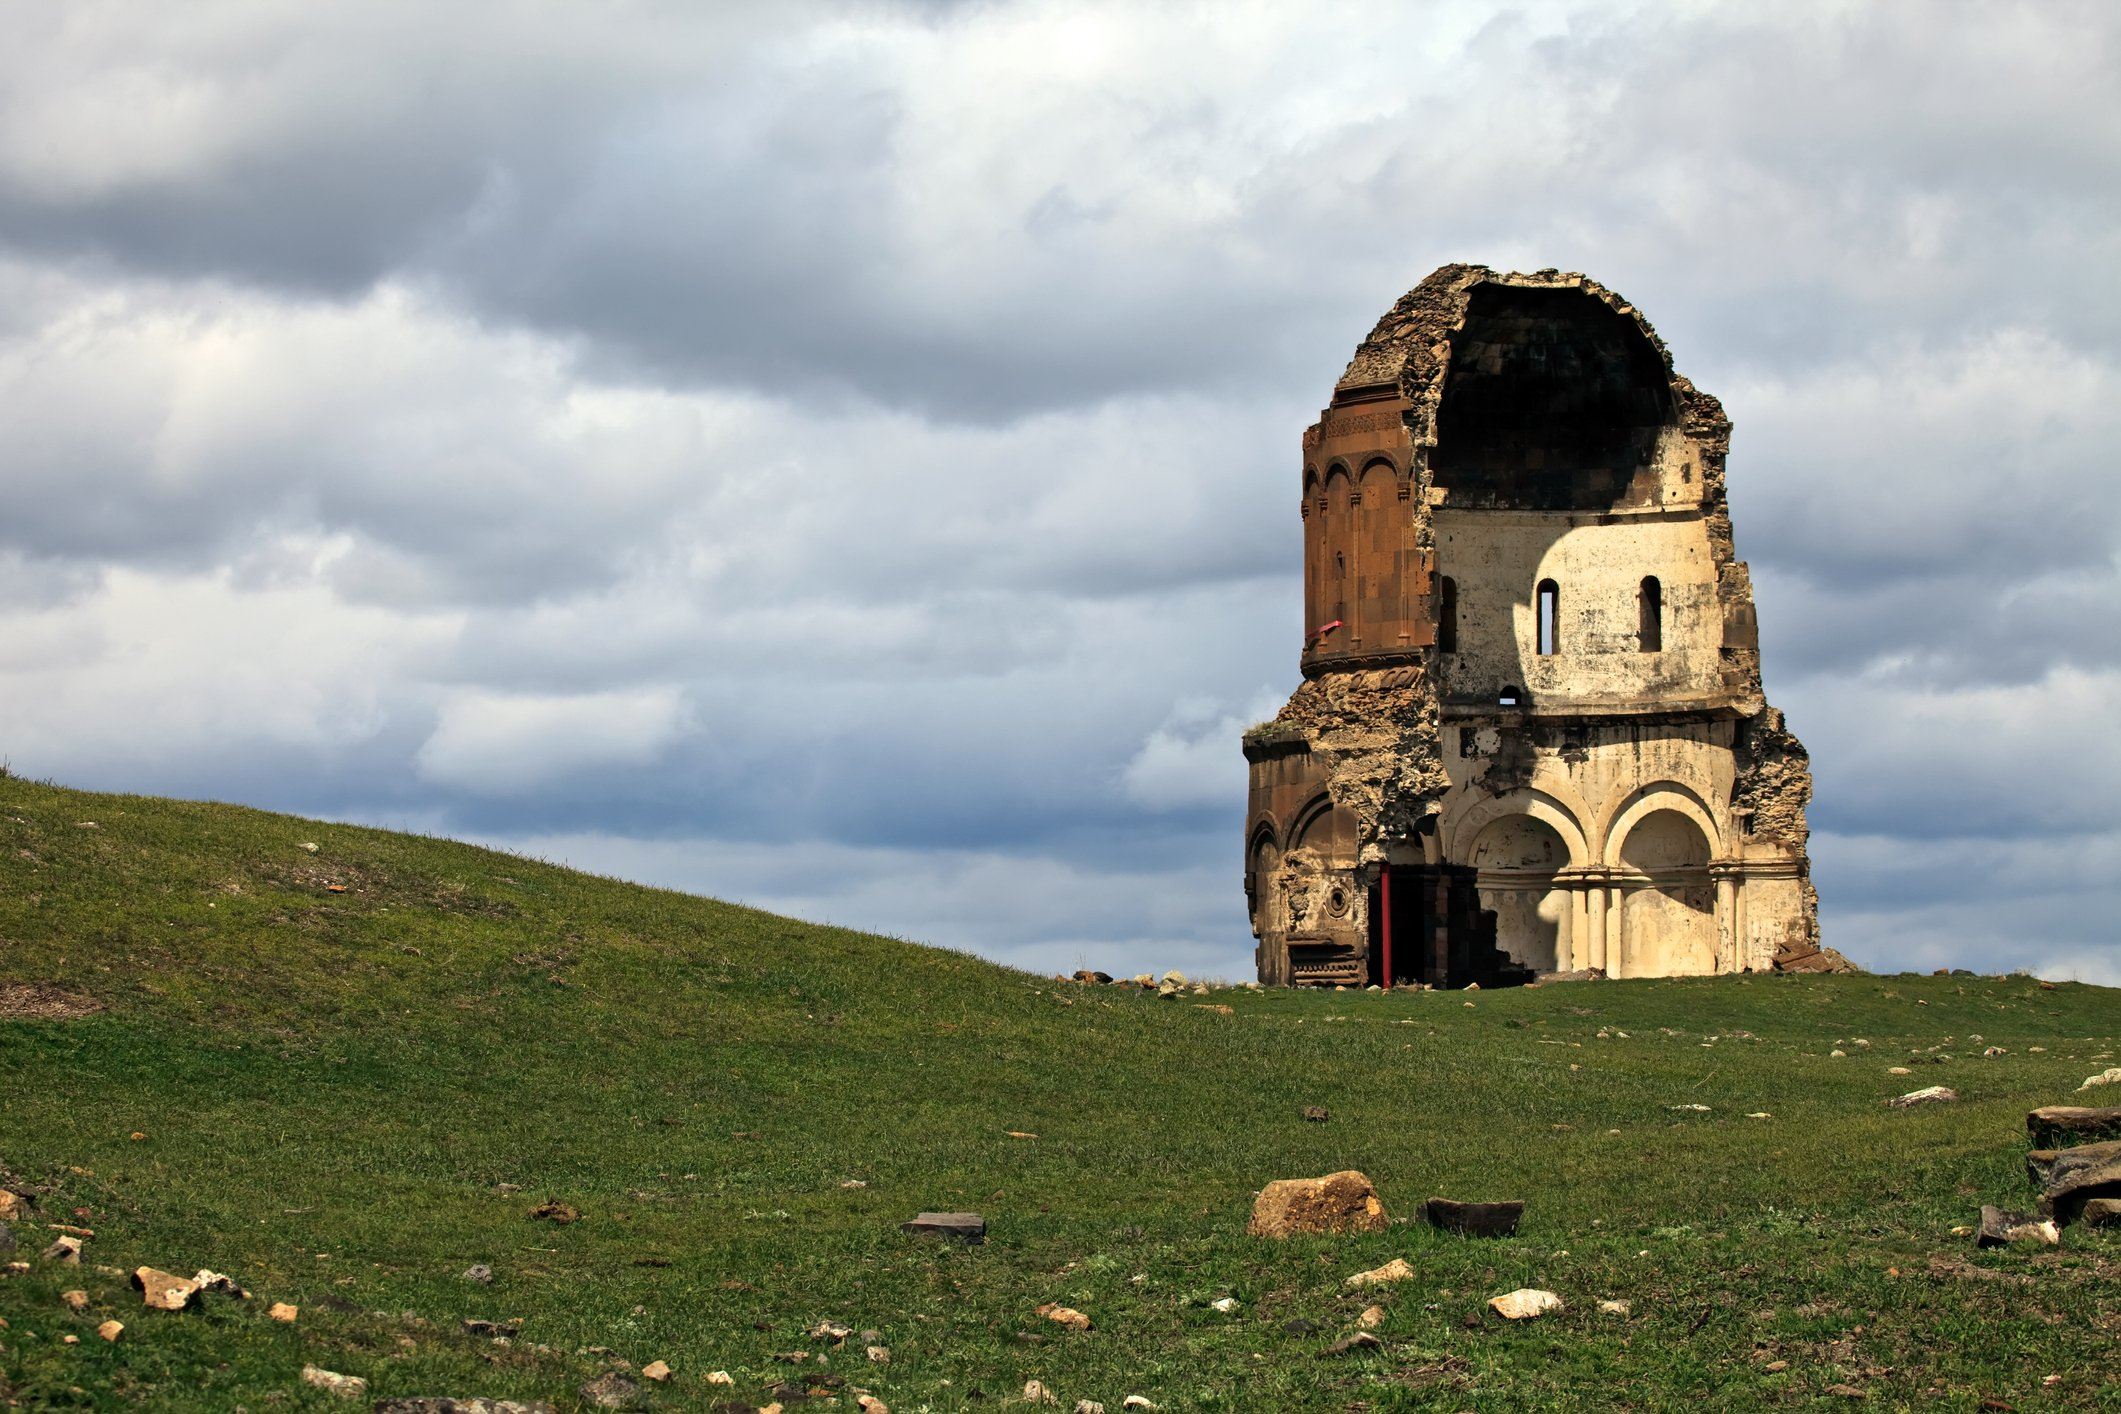 The ruins of the ancient capital of Armenia are currently in Turkey, accessible only from the town of Kars. (iStock Photo)